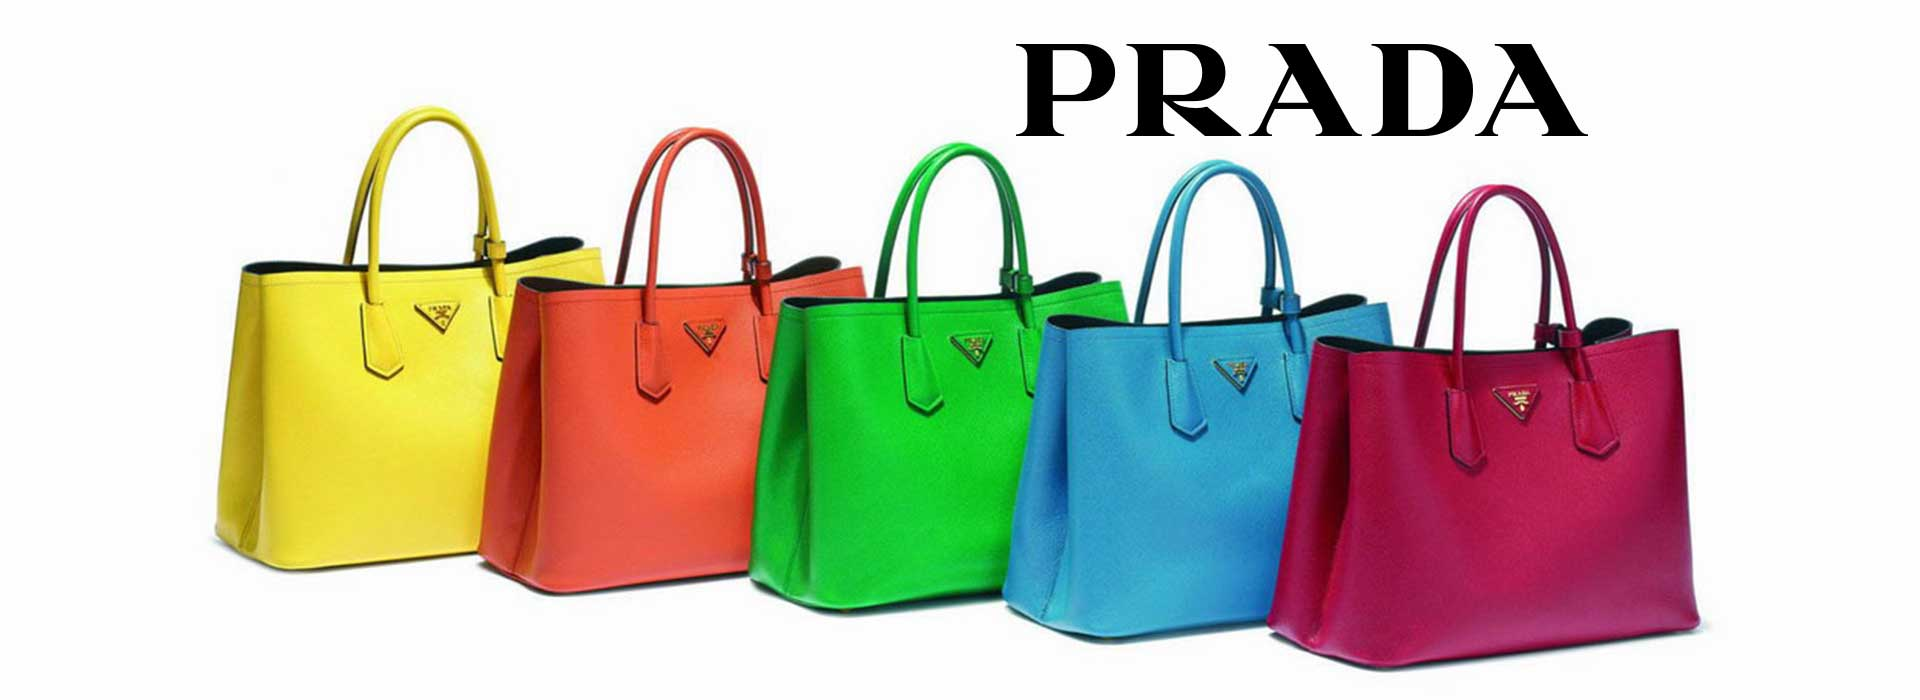 Prada Outlet Store, Cheap Prada Totes, Top-Handle Bags, Shoulder Bags, Briefcases, Messengers, Backpacks, Wallets, Shoes, Accessories Outlet Sale